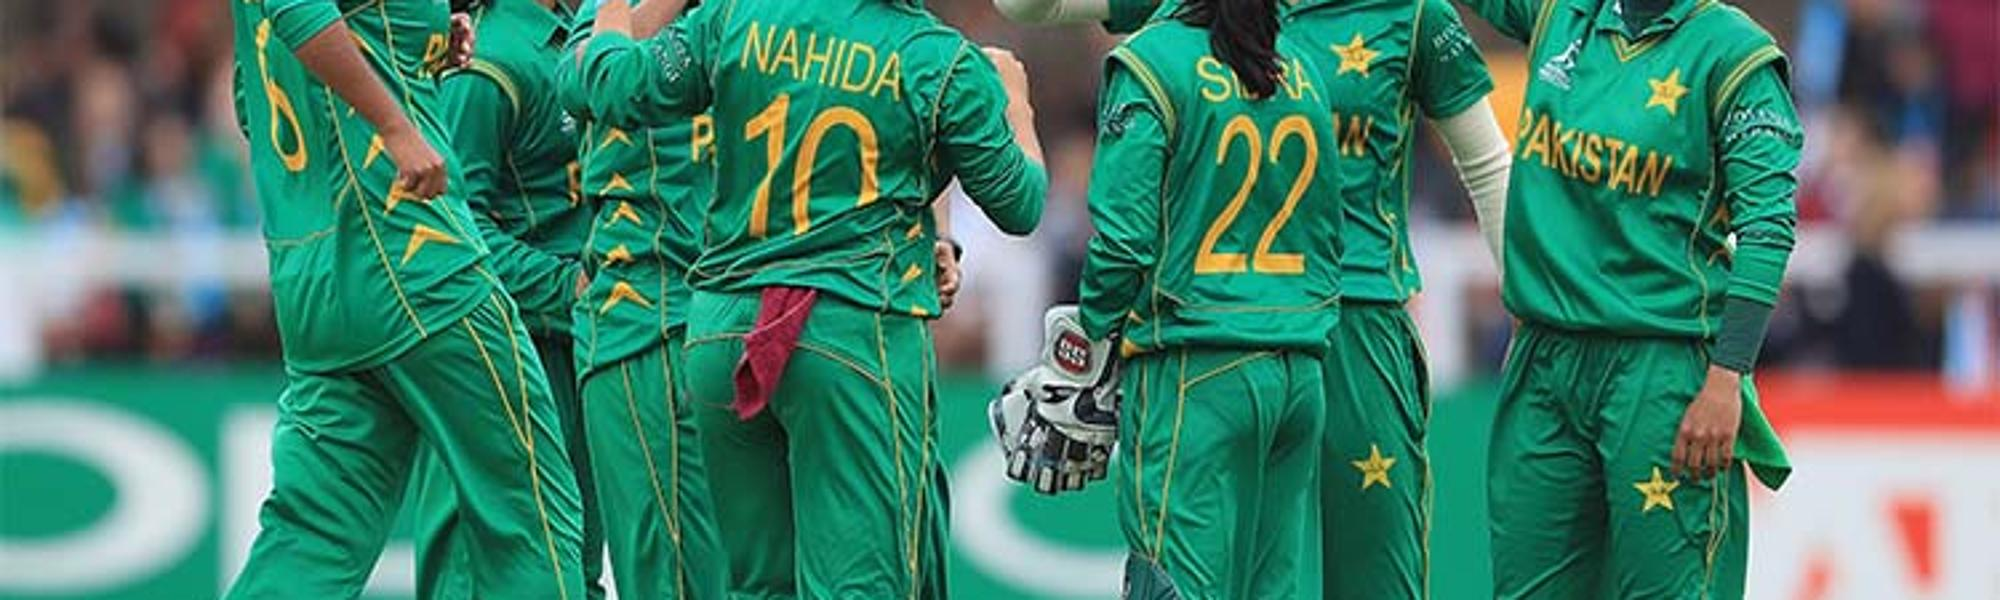 Pakistan is in must-win territory after losing its first two games in the tournament.